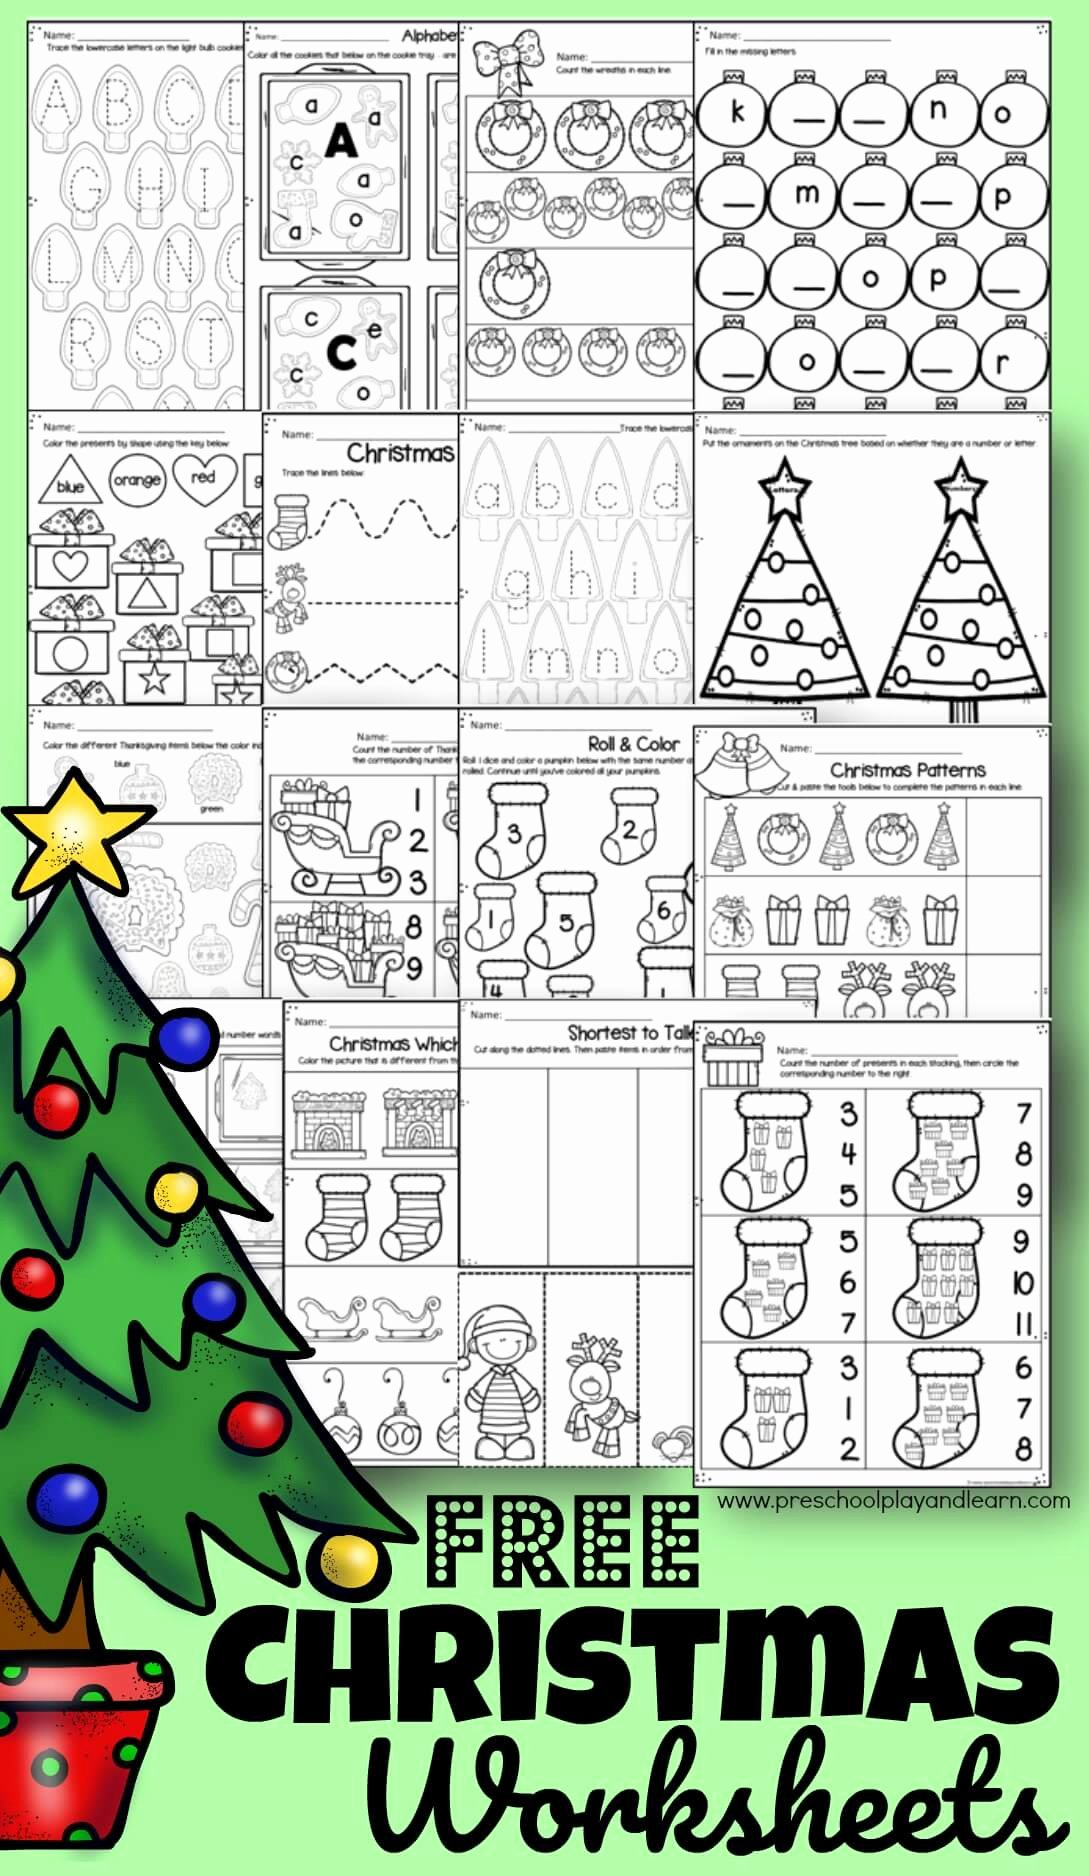 Printable Christmas Worksheets for Preschoolers Inspirational Free Christmas Worksheets for Preschoolers